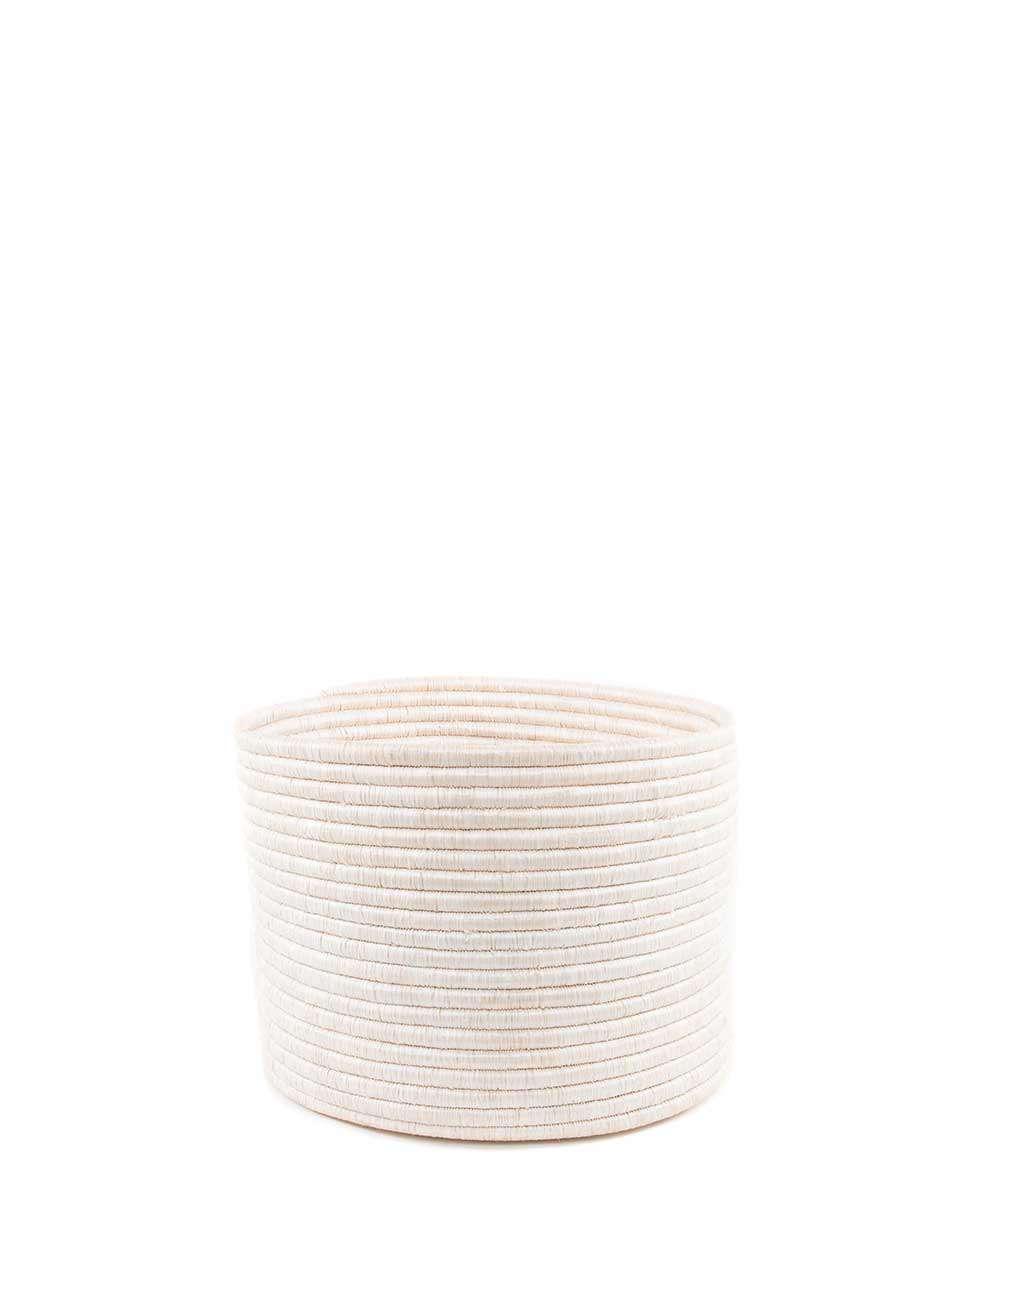 Medium White Round Knitting Basket | The Little Market